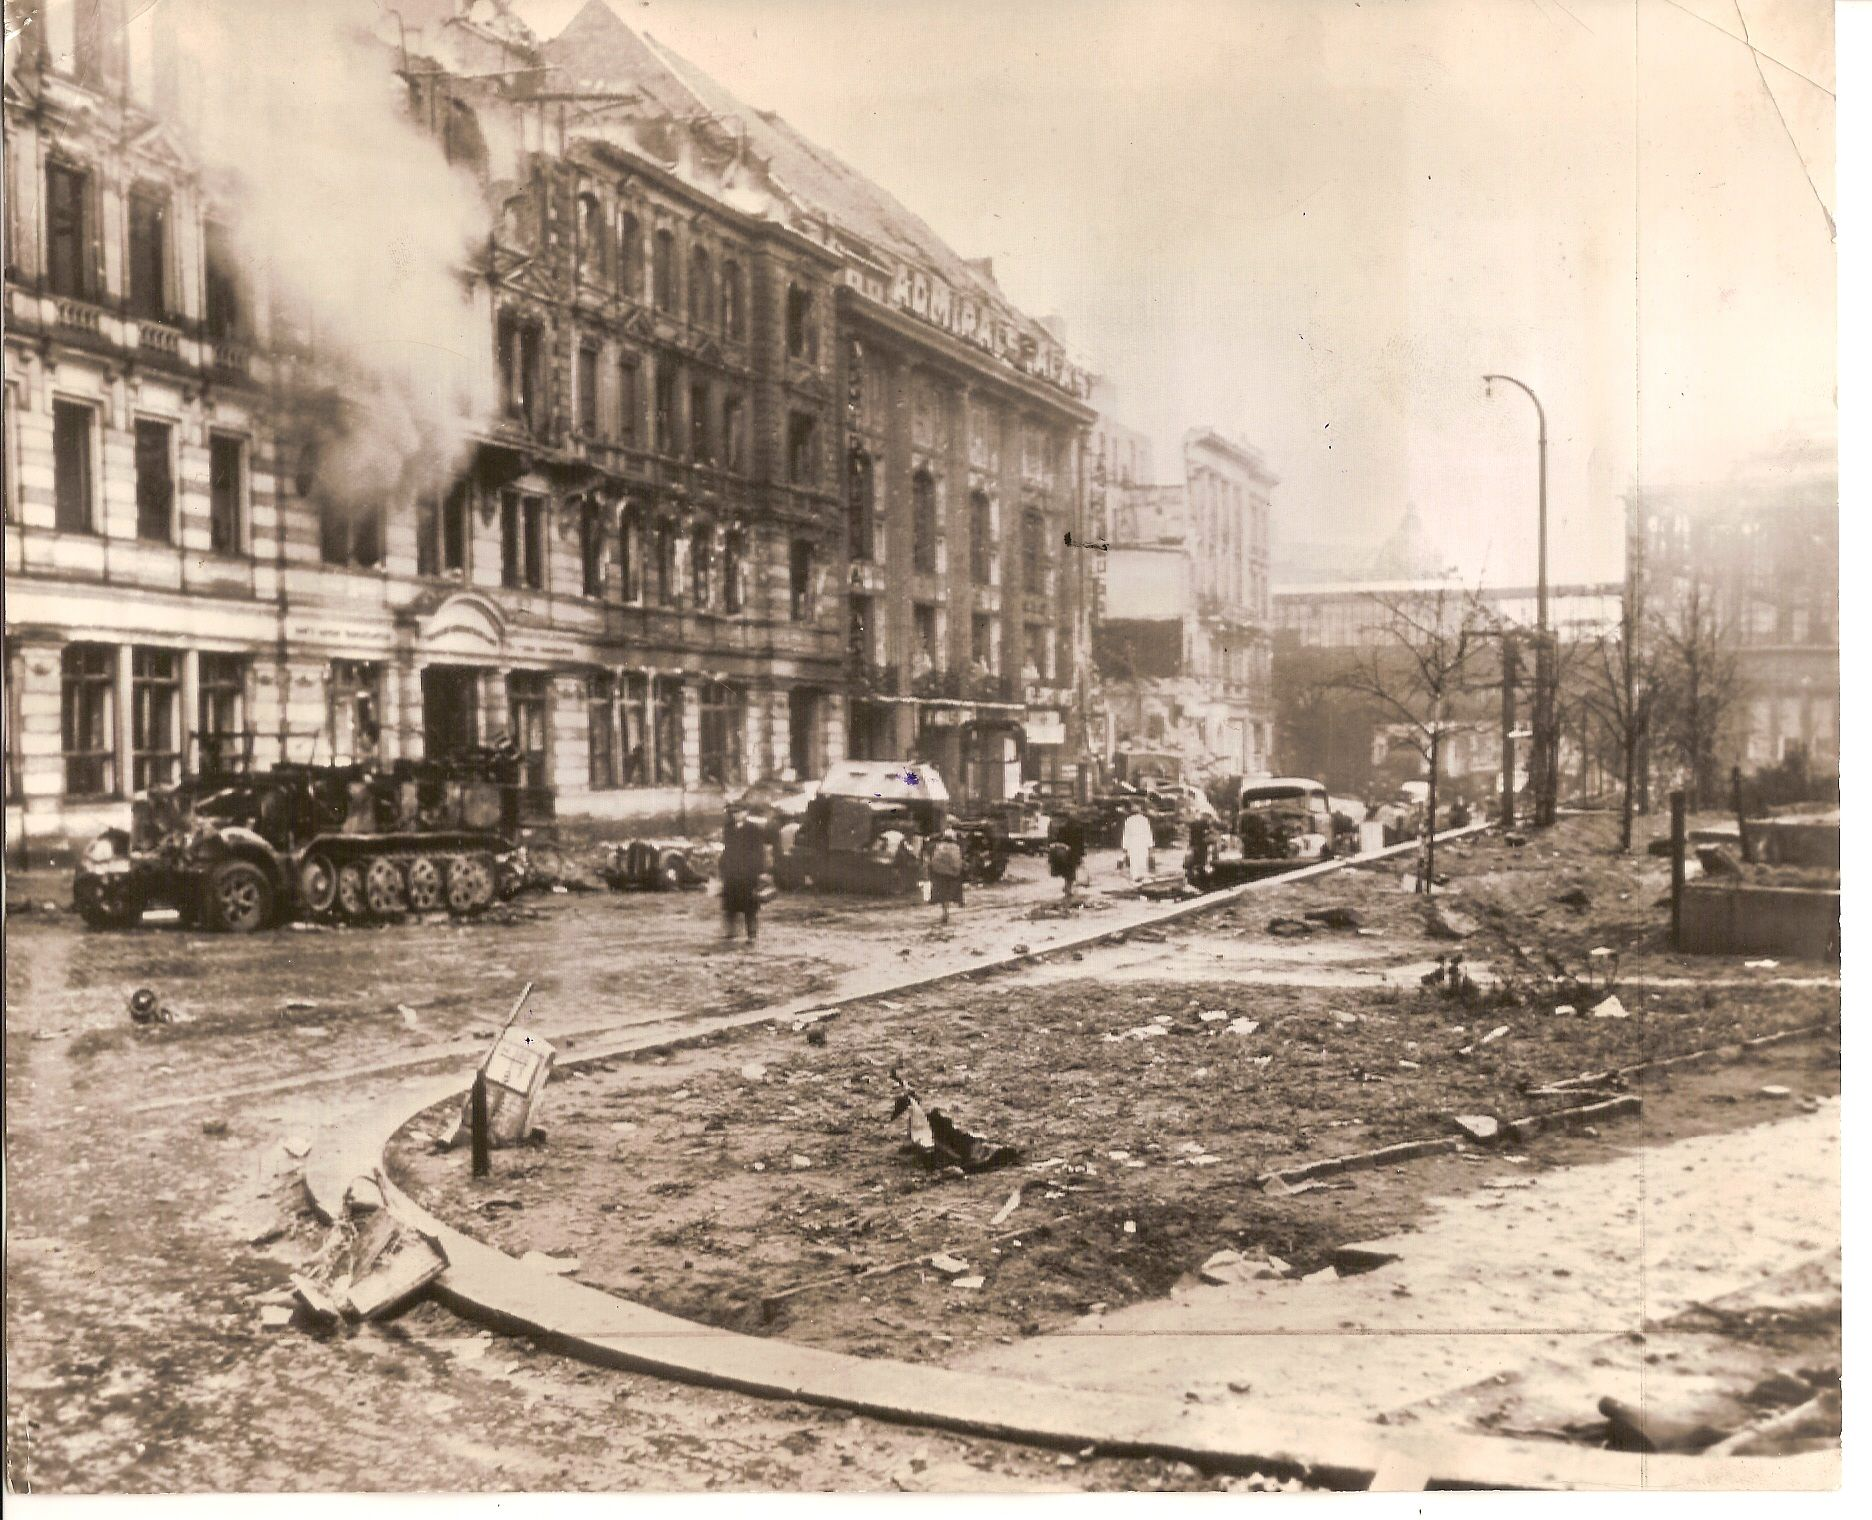 """An attempt to breakout on May 2nd 1945, Berlin   The building with a huge signboard was the Admiralspalast in the The Friedrichstraße 101, a major culture and shopping street in central Berlin. Background the """"S-Bahnhof Friedrichstraße"""" slides across the street. This series of the well known photo of a blown-up armored car in Berlin was actually one of the Schwedish Kompanie's vehicles in the 11th SS Nordland Division. It could have been company commander Pehrssons command vehicle that was…"""